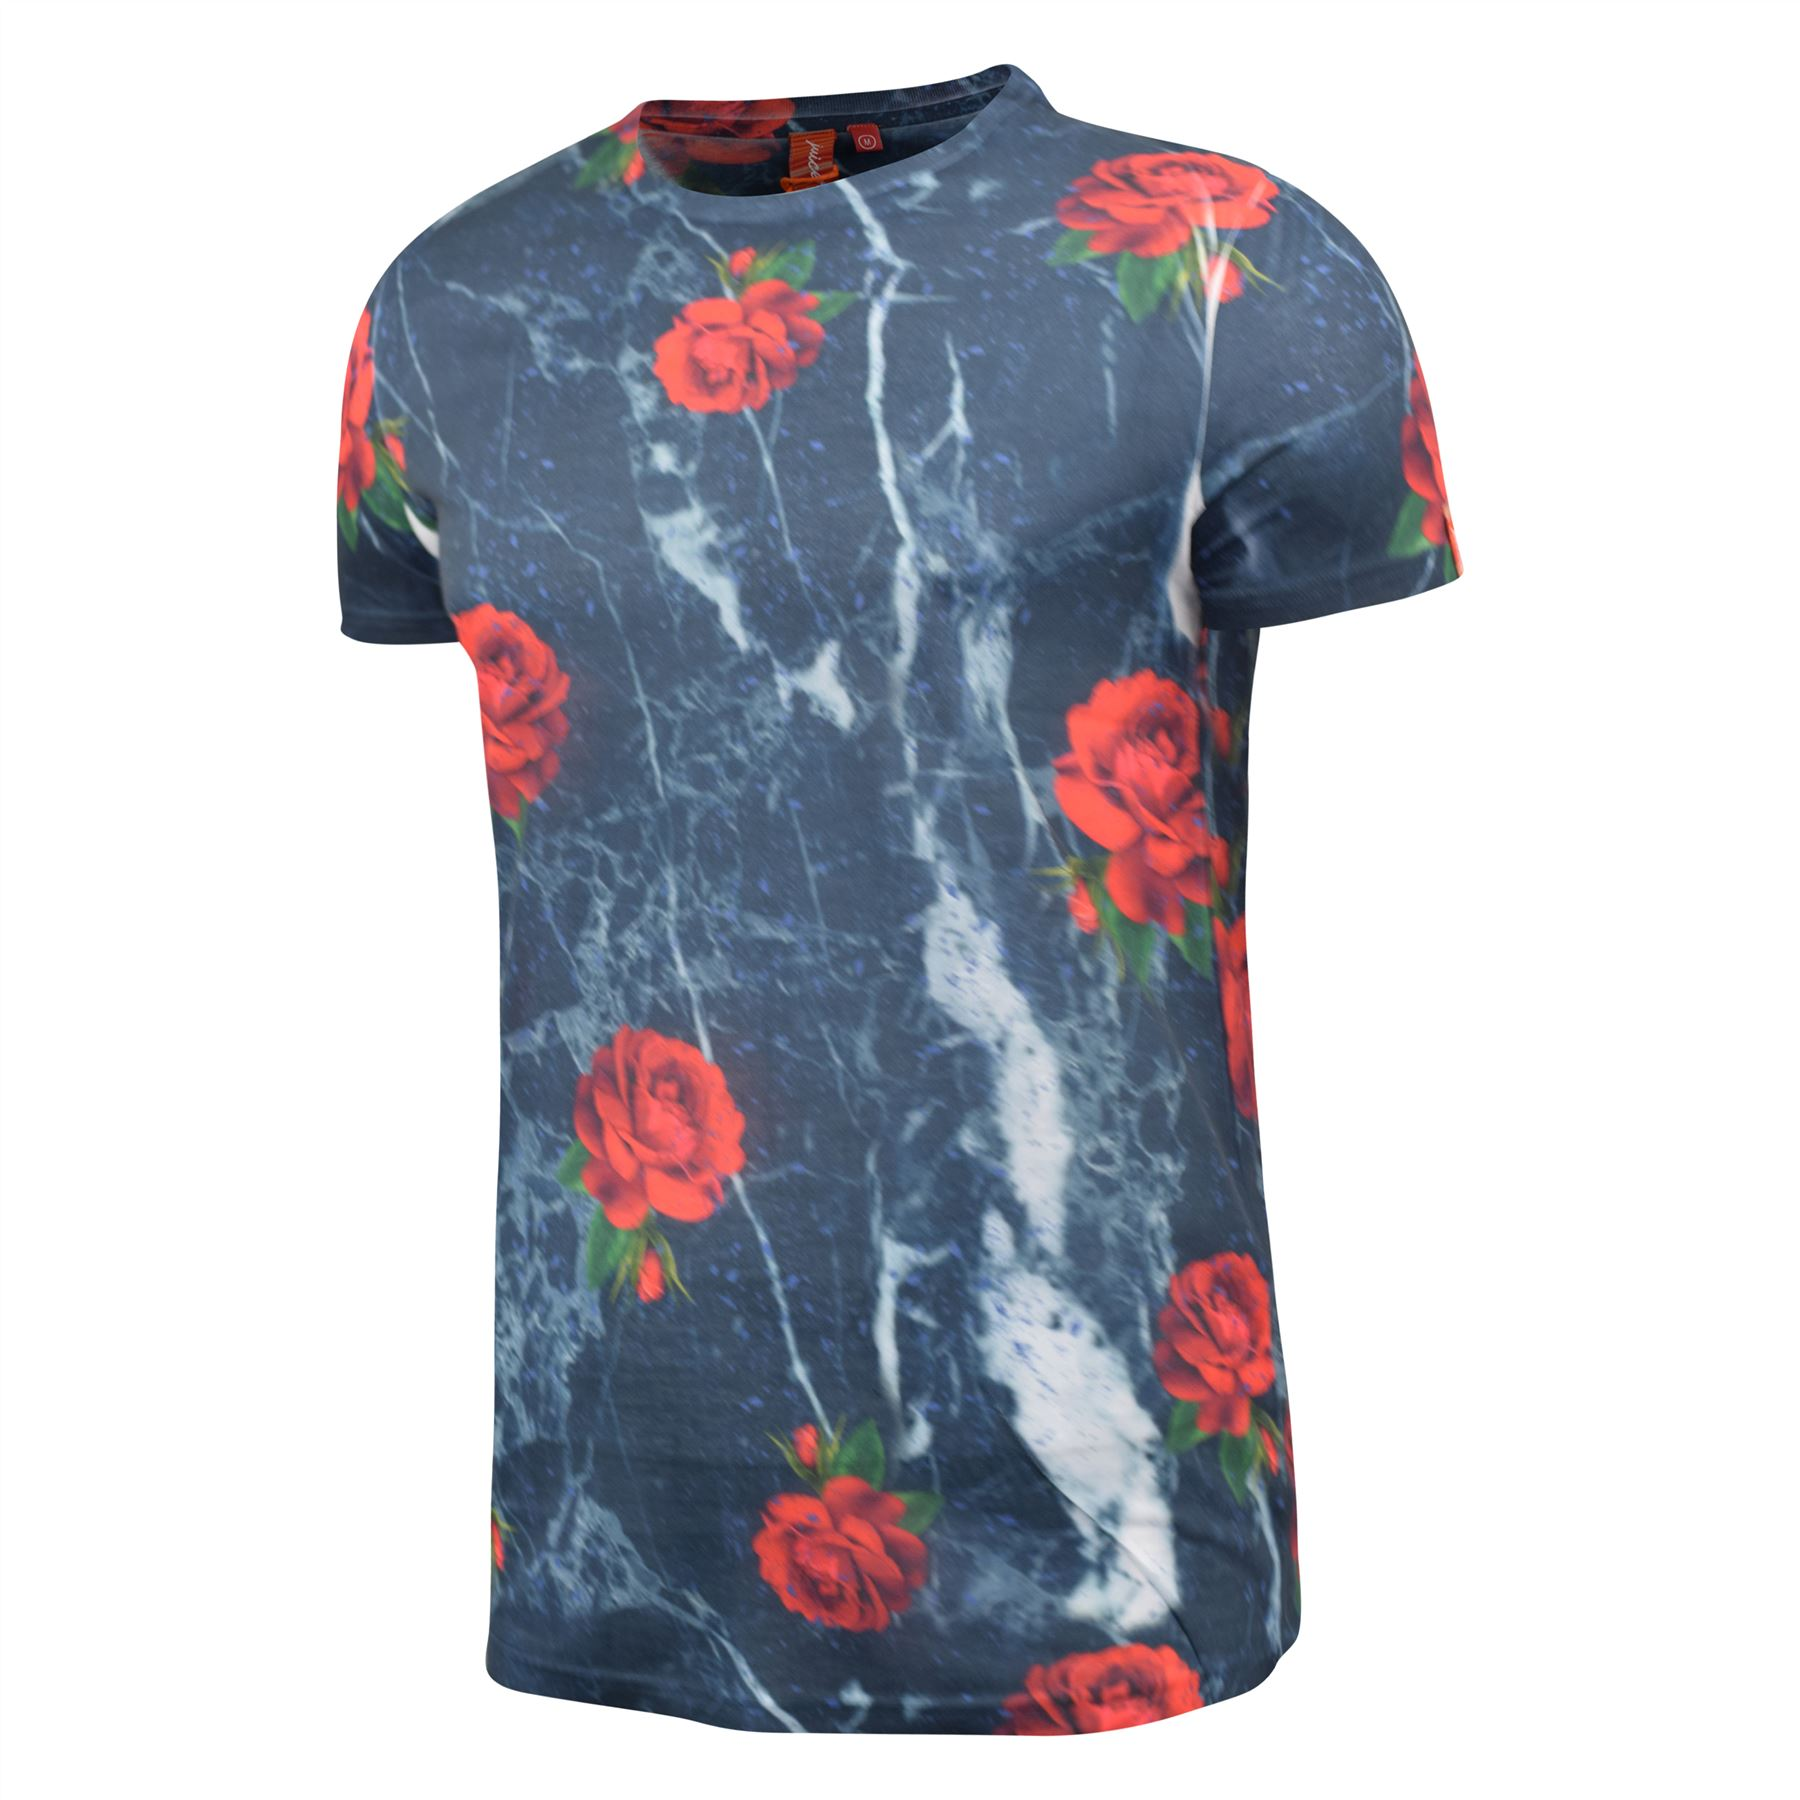 Mens-T-Shirt-Juice-Floral-Print-Flower-Crew-Neck-Tee-Top thumbnail 15